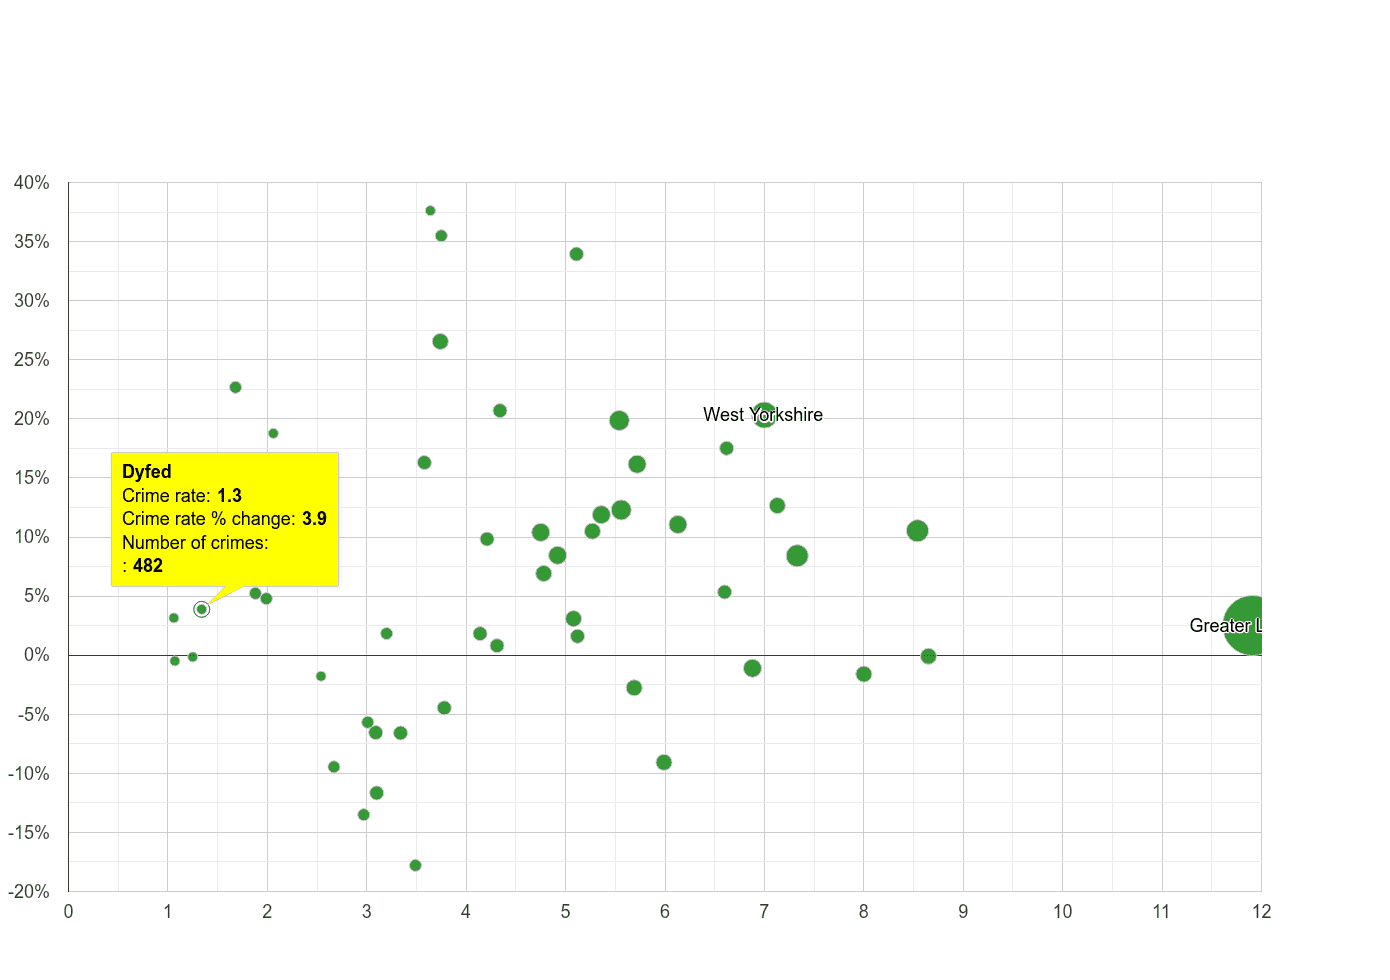 Dyfed vehicle crime rate compared to other counties